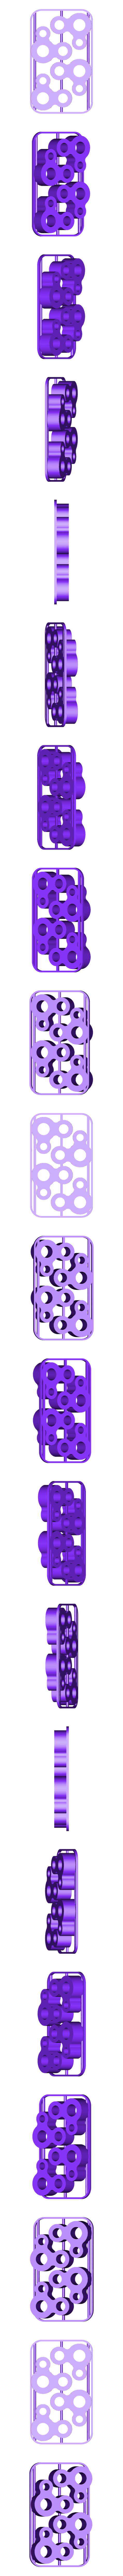 PARACORD_TENSIONERS_V3.stl Download free STL file Para Cord Goodies Snap Cards (Altoids 7) • 3D printing object, MuSSy